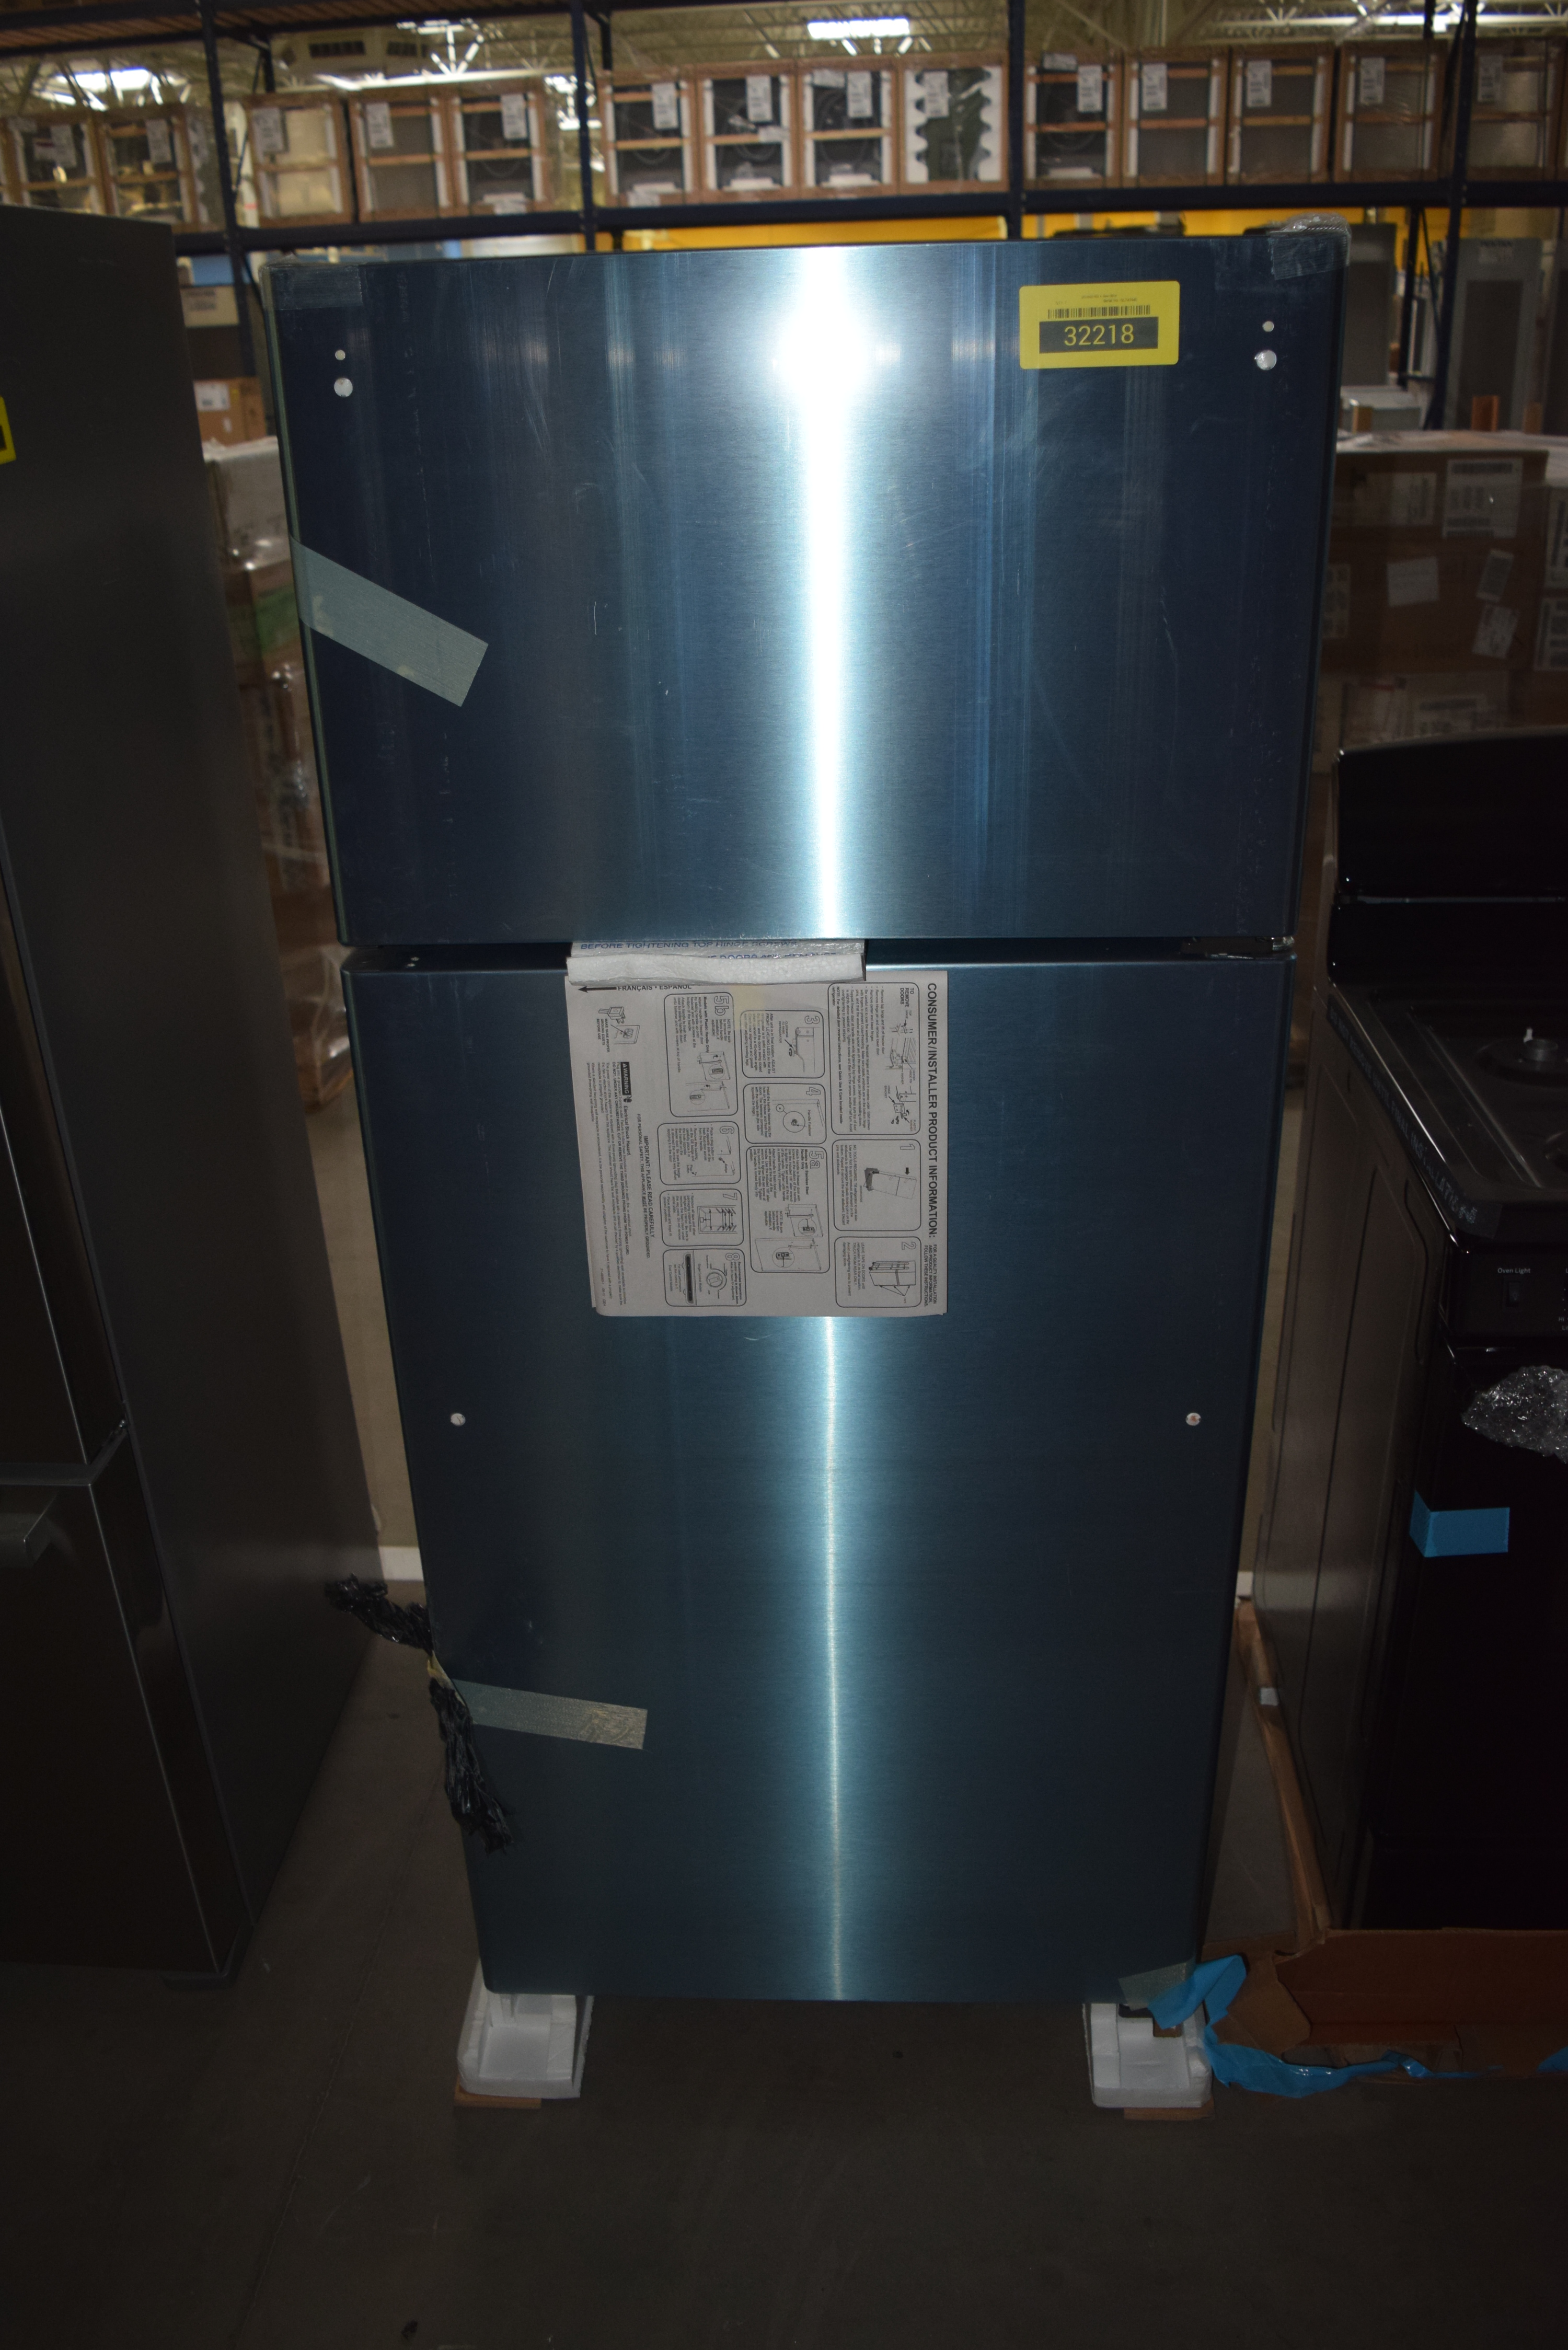 GE GIE16GSHSS Top-Freezer Refrigerator Stainless Steel